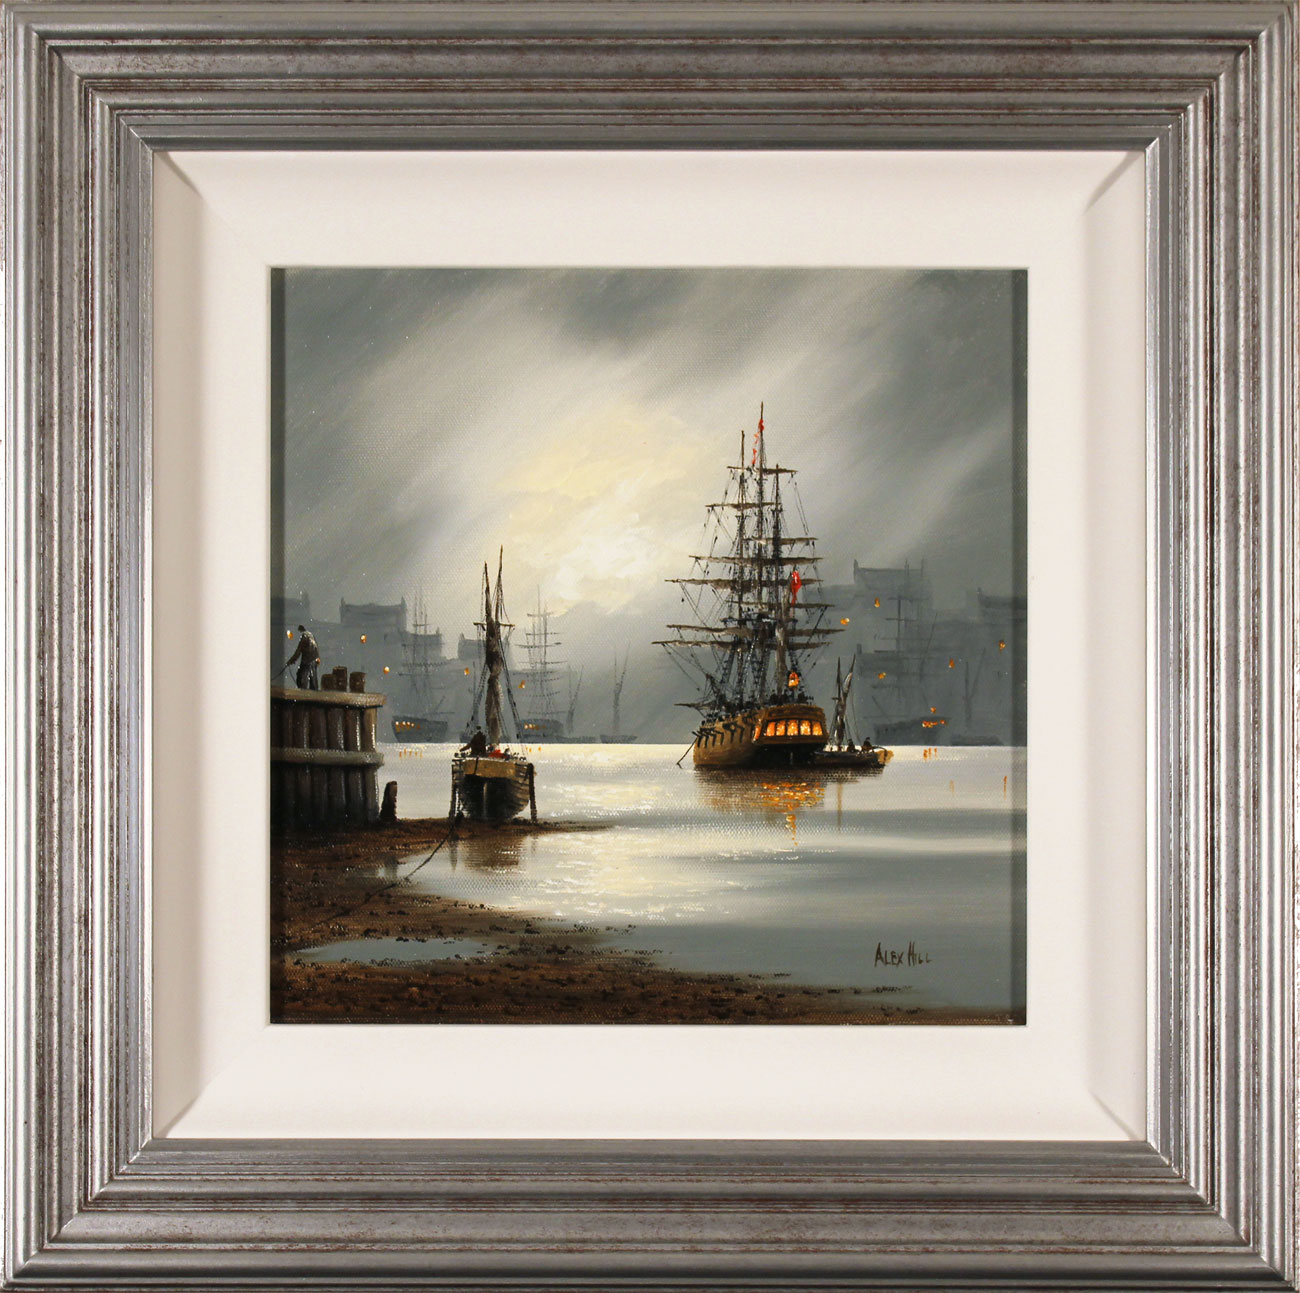 Alex Hill, Original oil painting on canvas, Moonlight Escape Click to enlarge